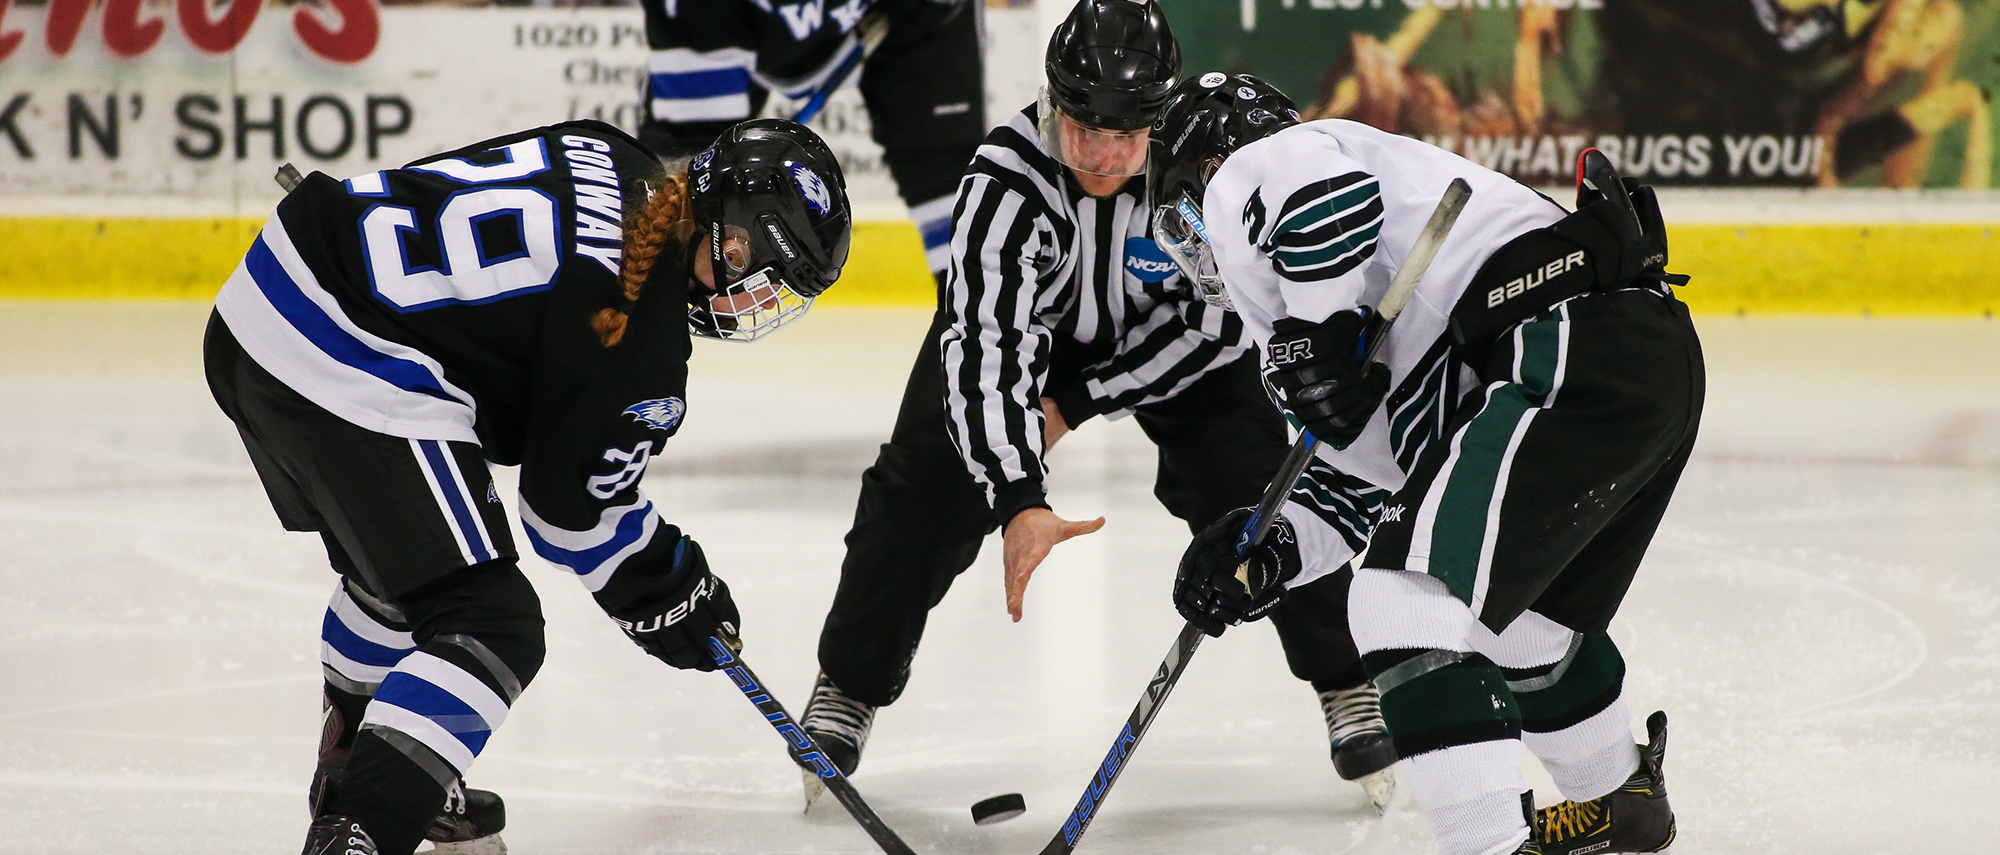 Clare Conway in a faceoff, women's ice hockey at Nichols